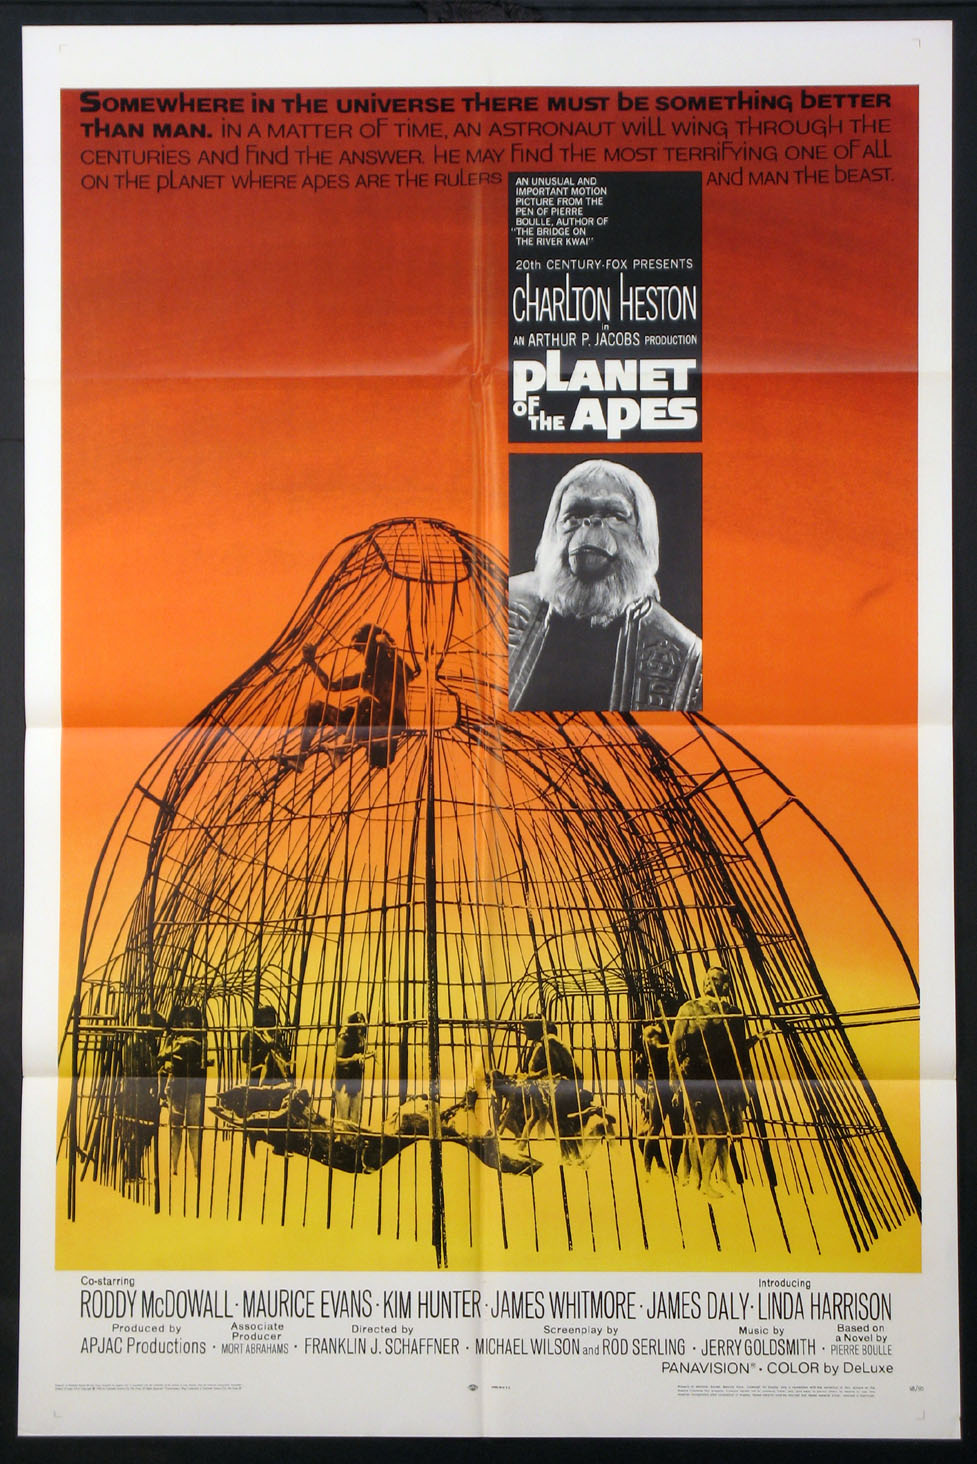 PLANET OF THE APES, THE @ FilmPosters.com